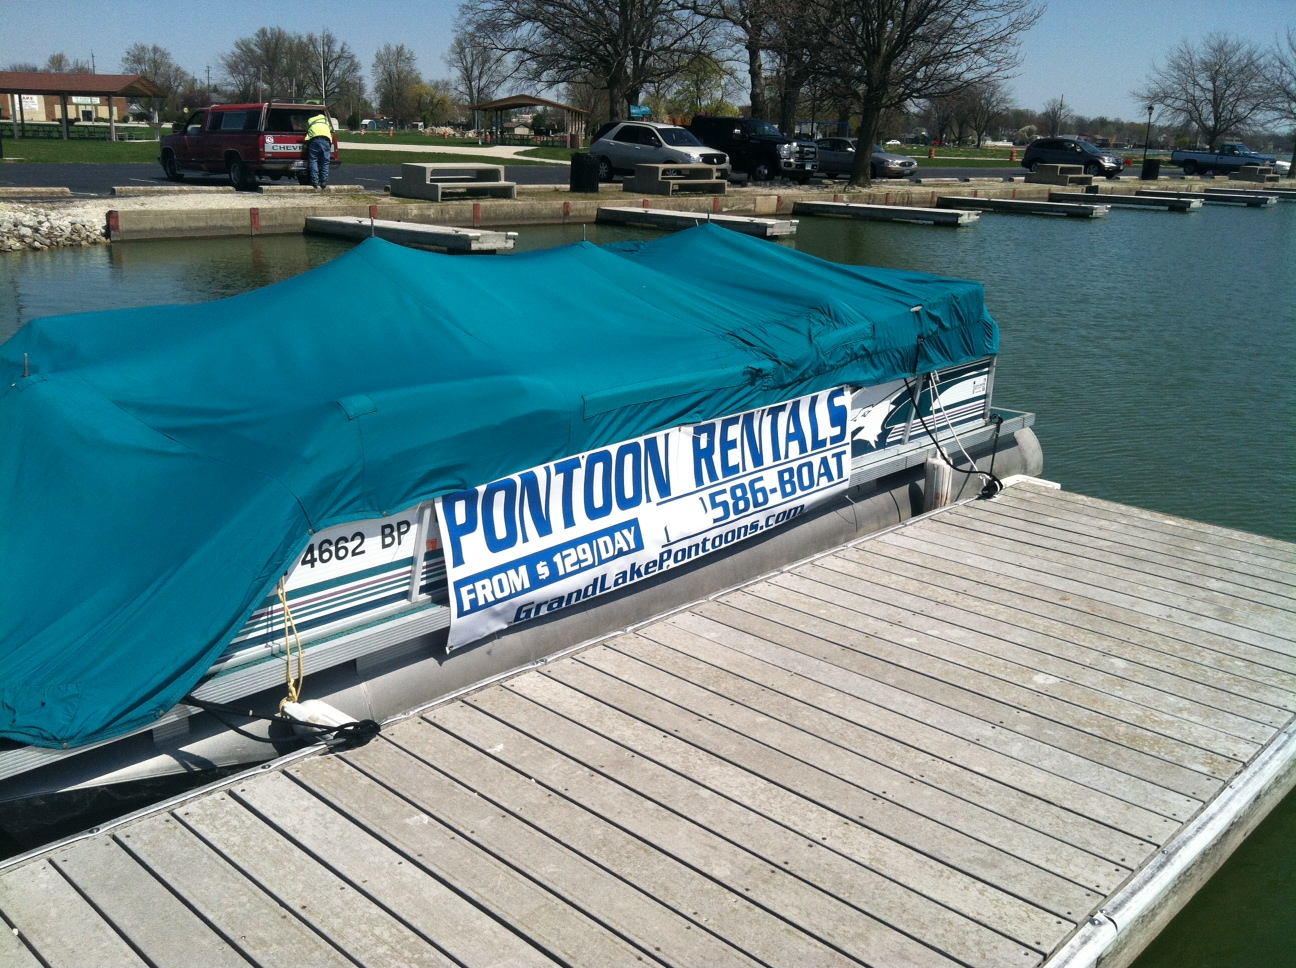 Grand Lake Pontoon Rentals Joins Chamber